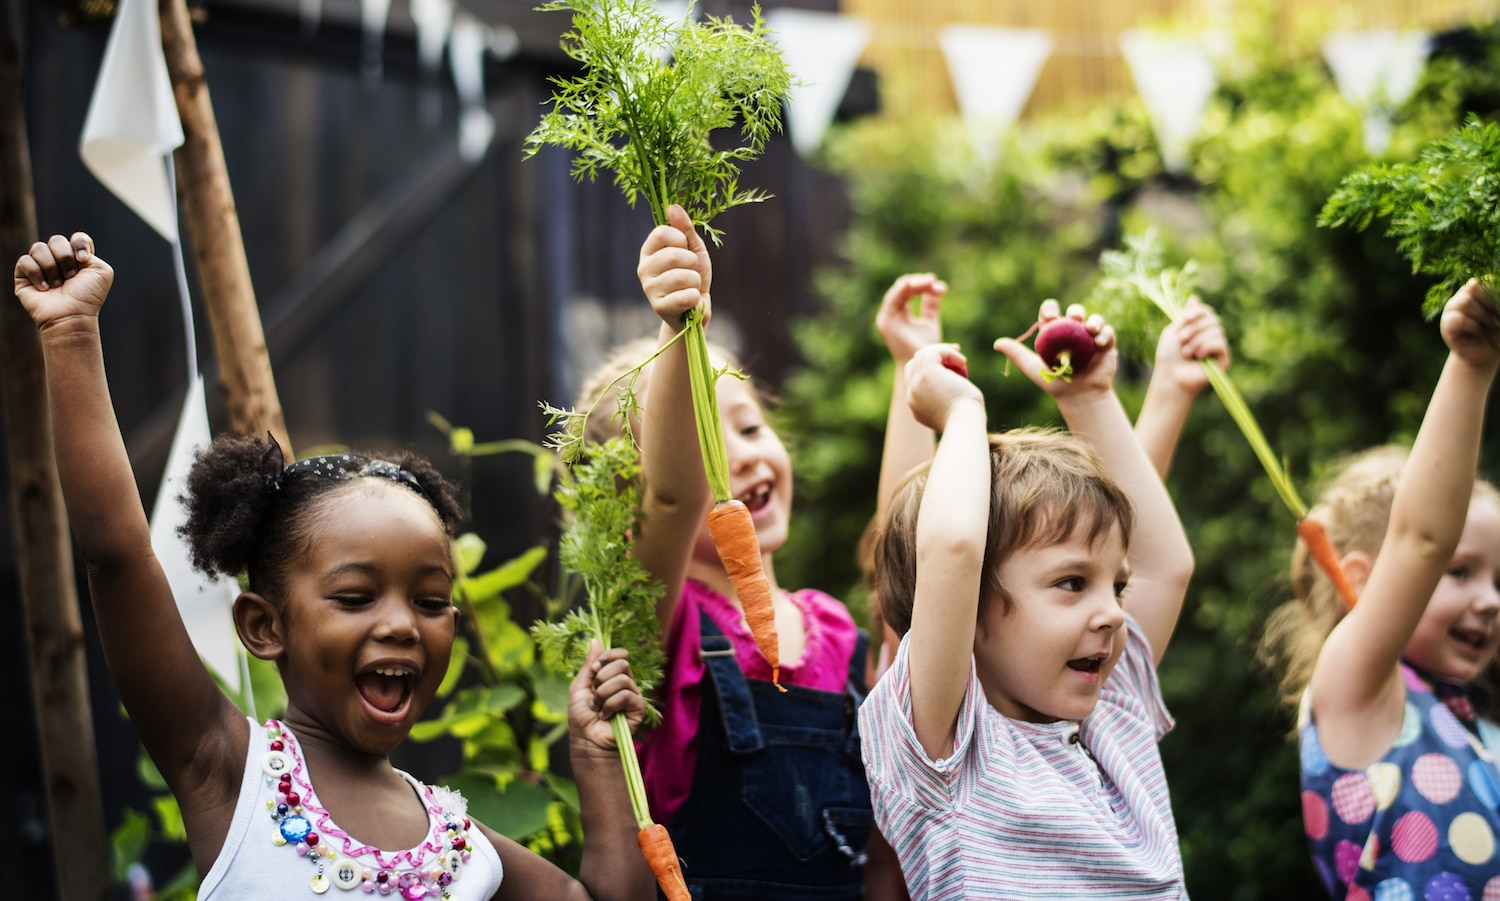 California budget boosts healthy food for kids and markets for farmers